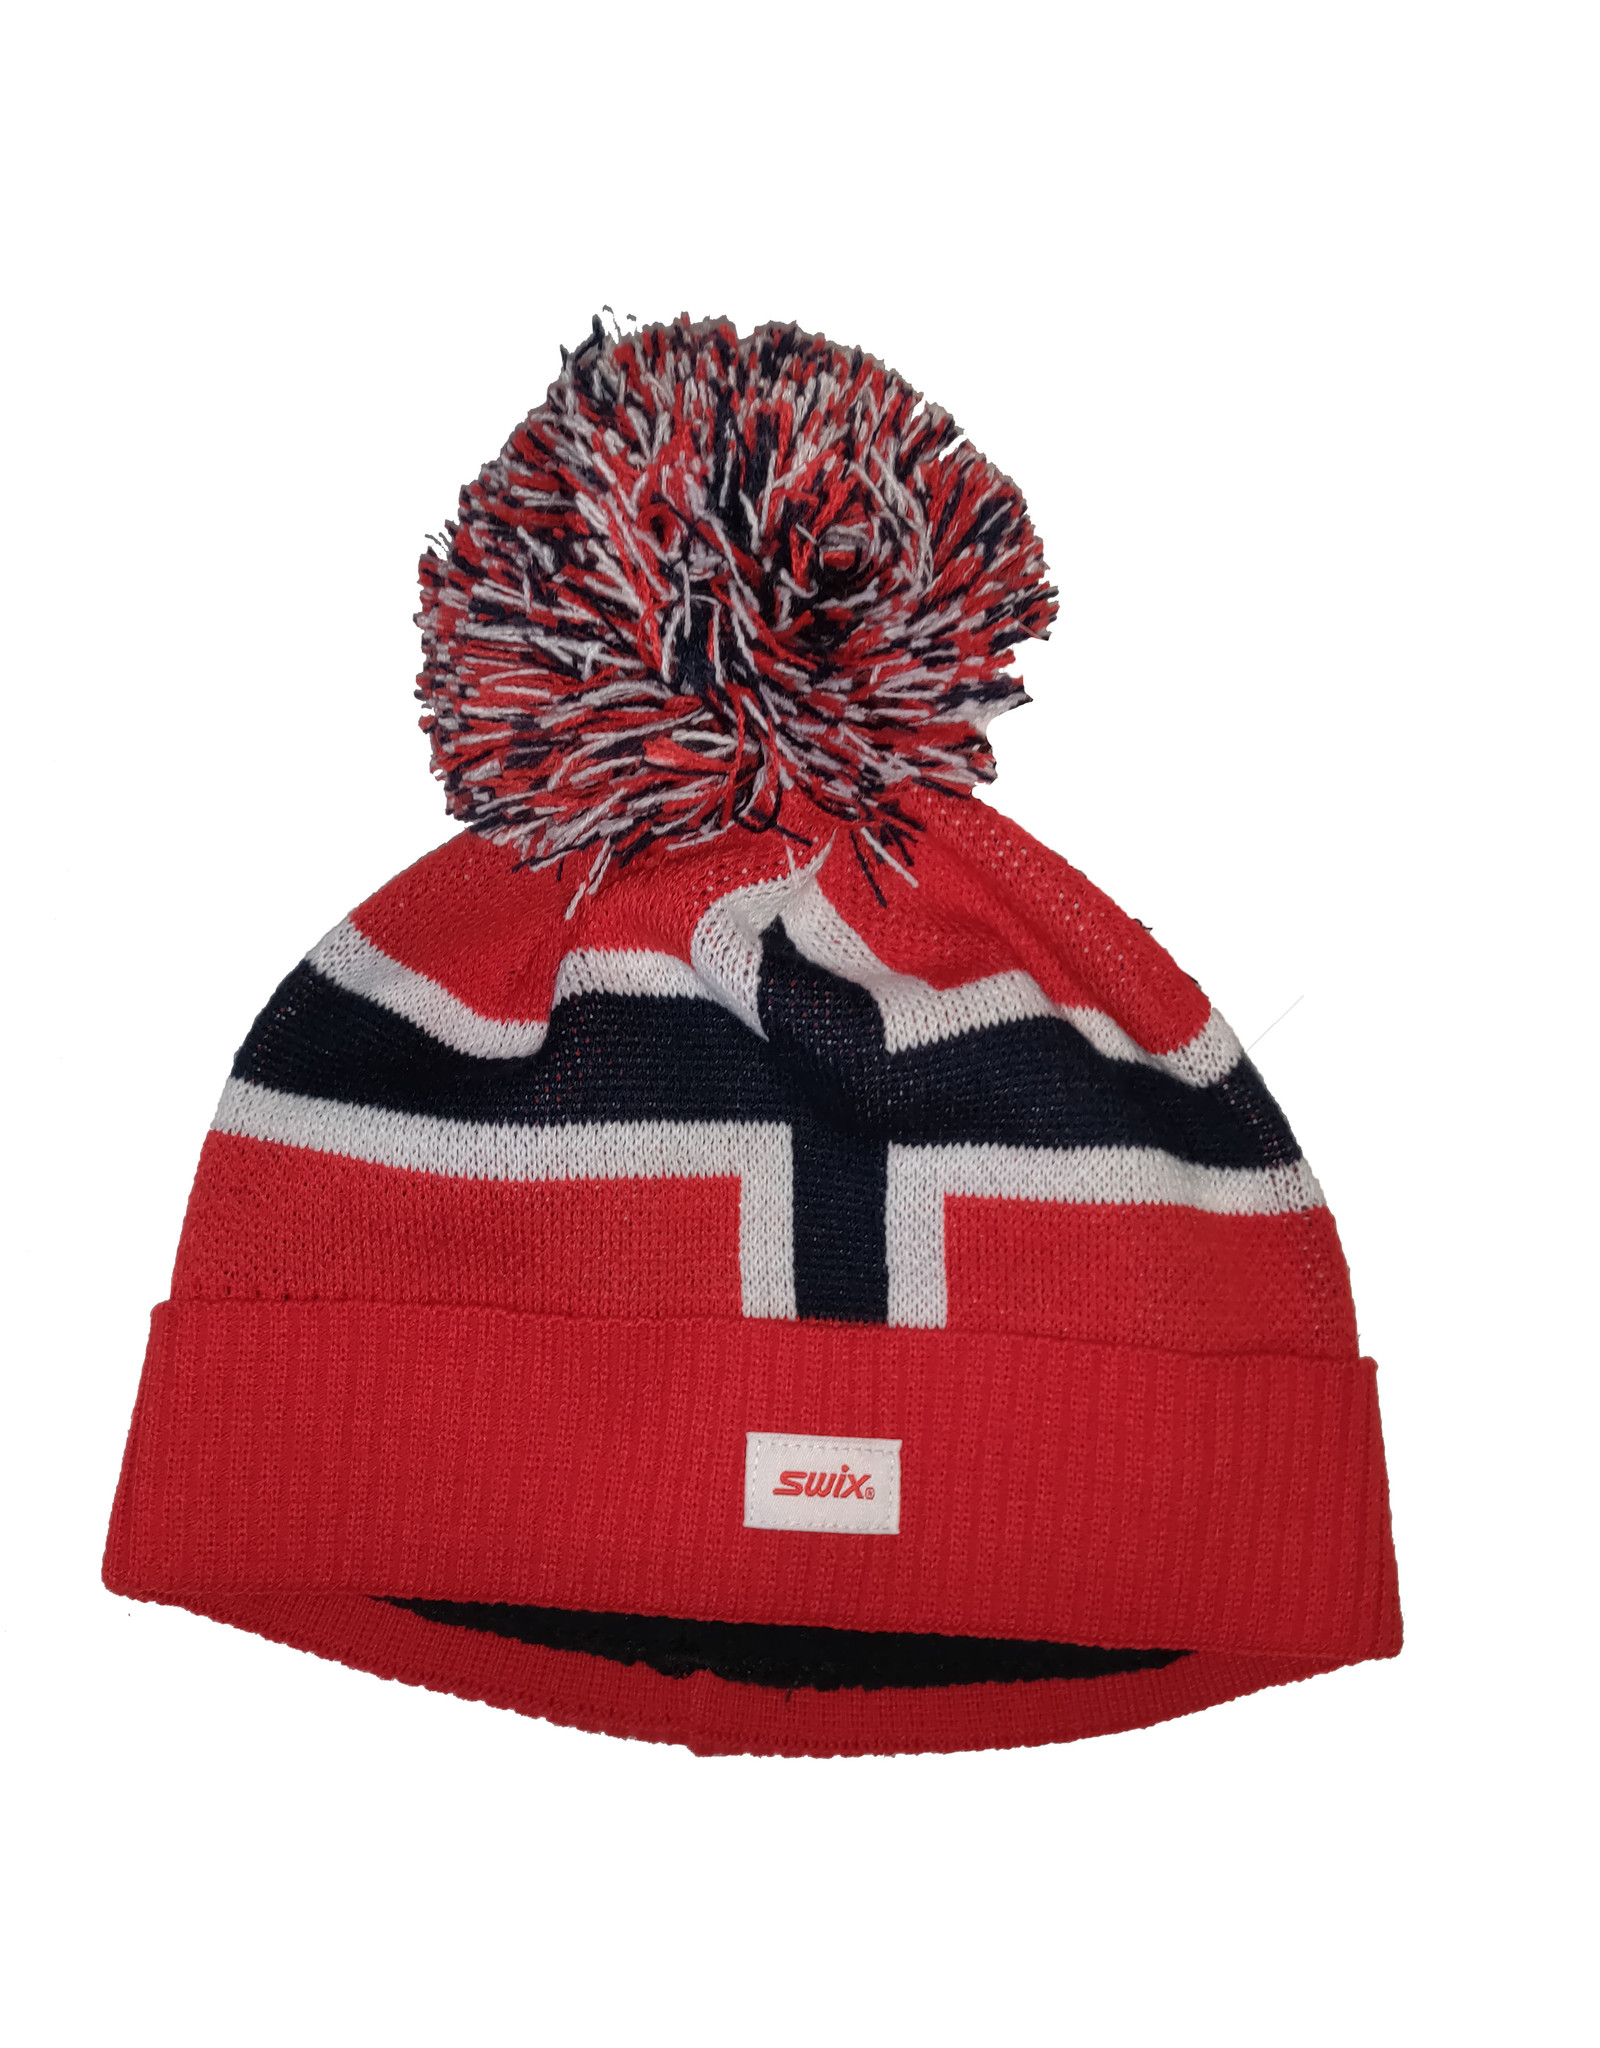 Swix Norway Big Pom Hat